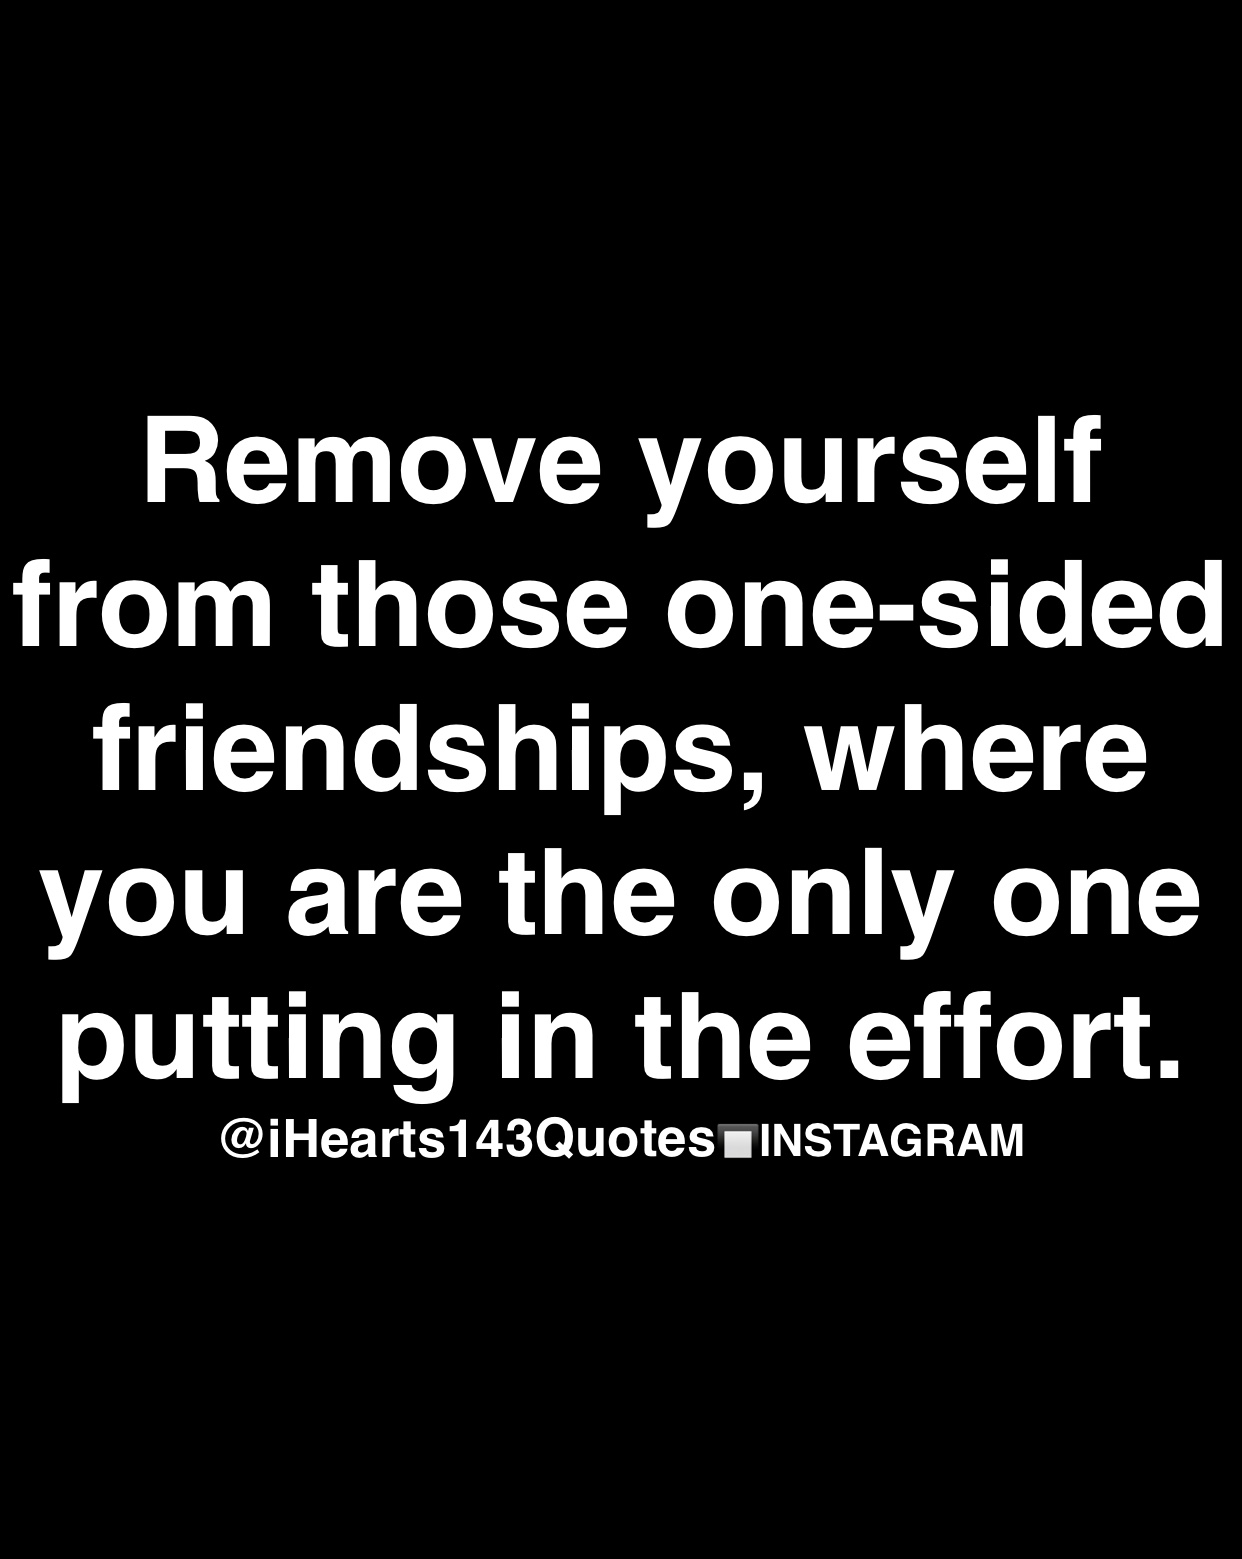 Quotes About One Sided Friendship Awesome Daily Motivational Quotes  Ihearts143Quotes